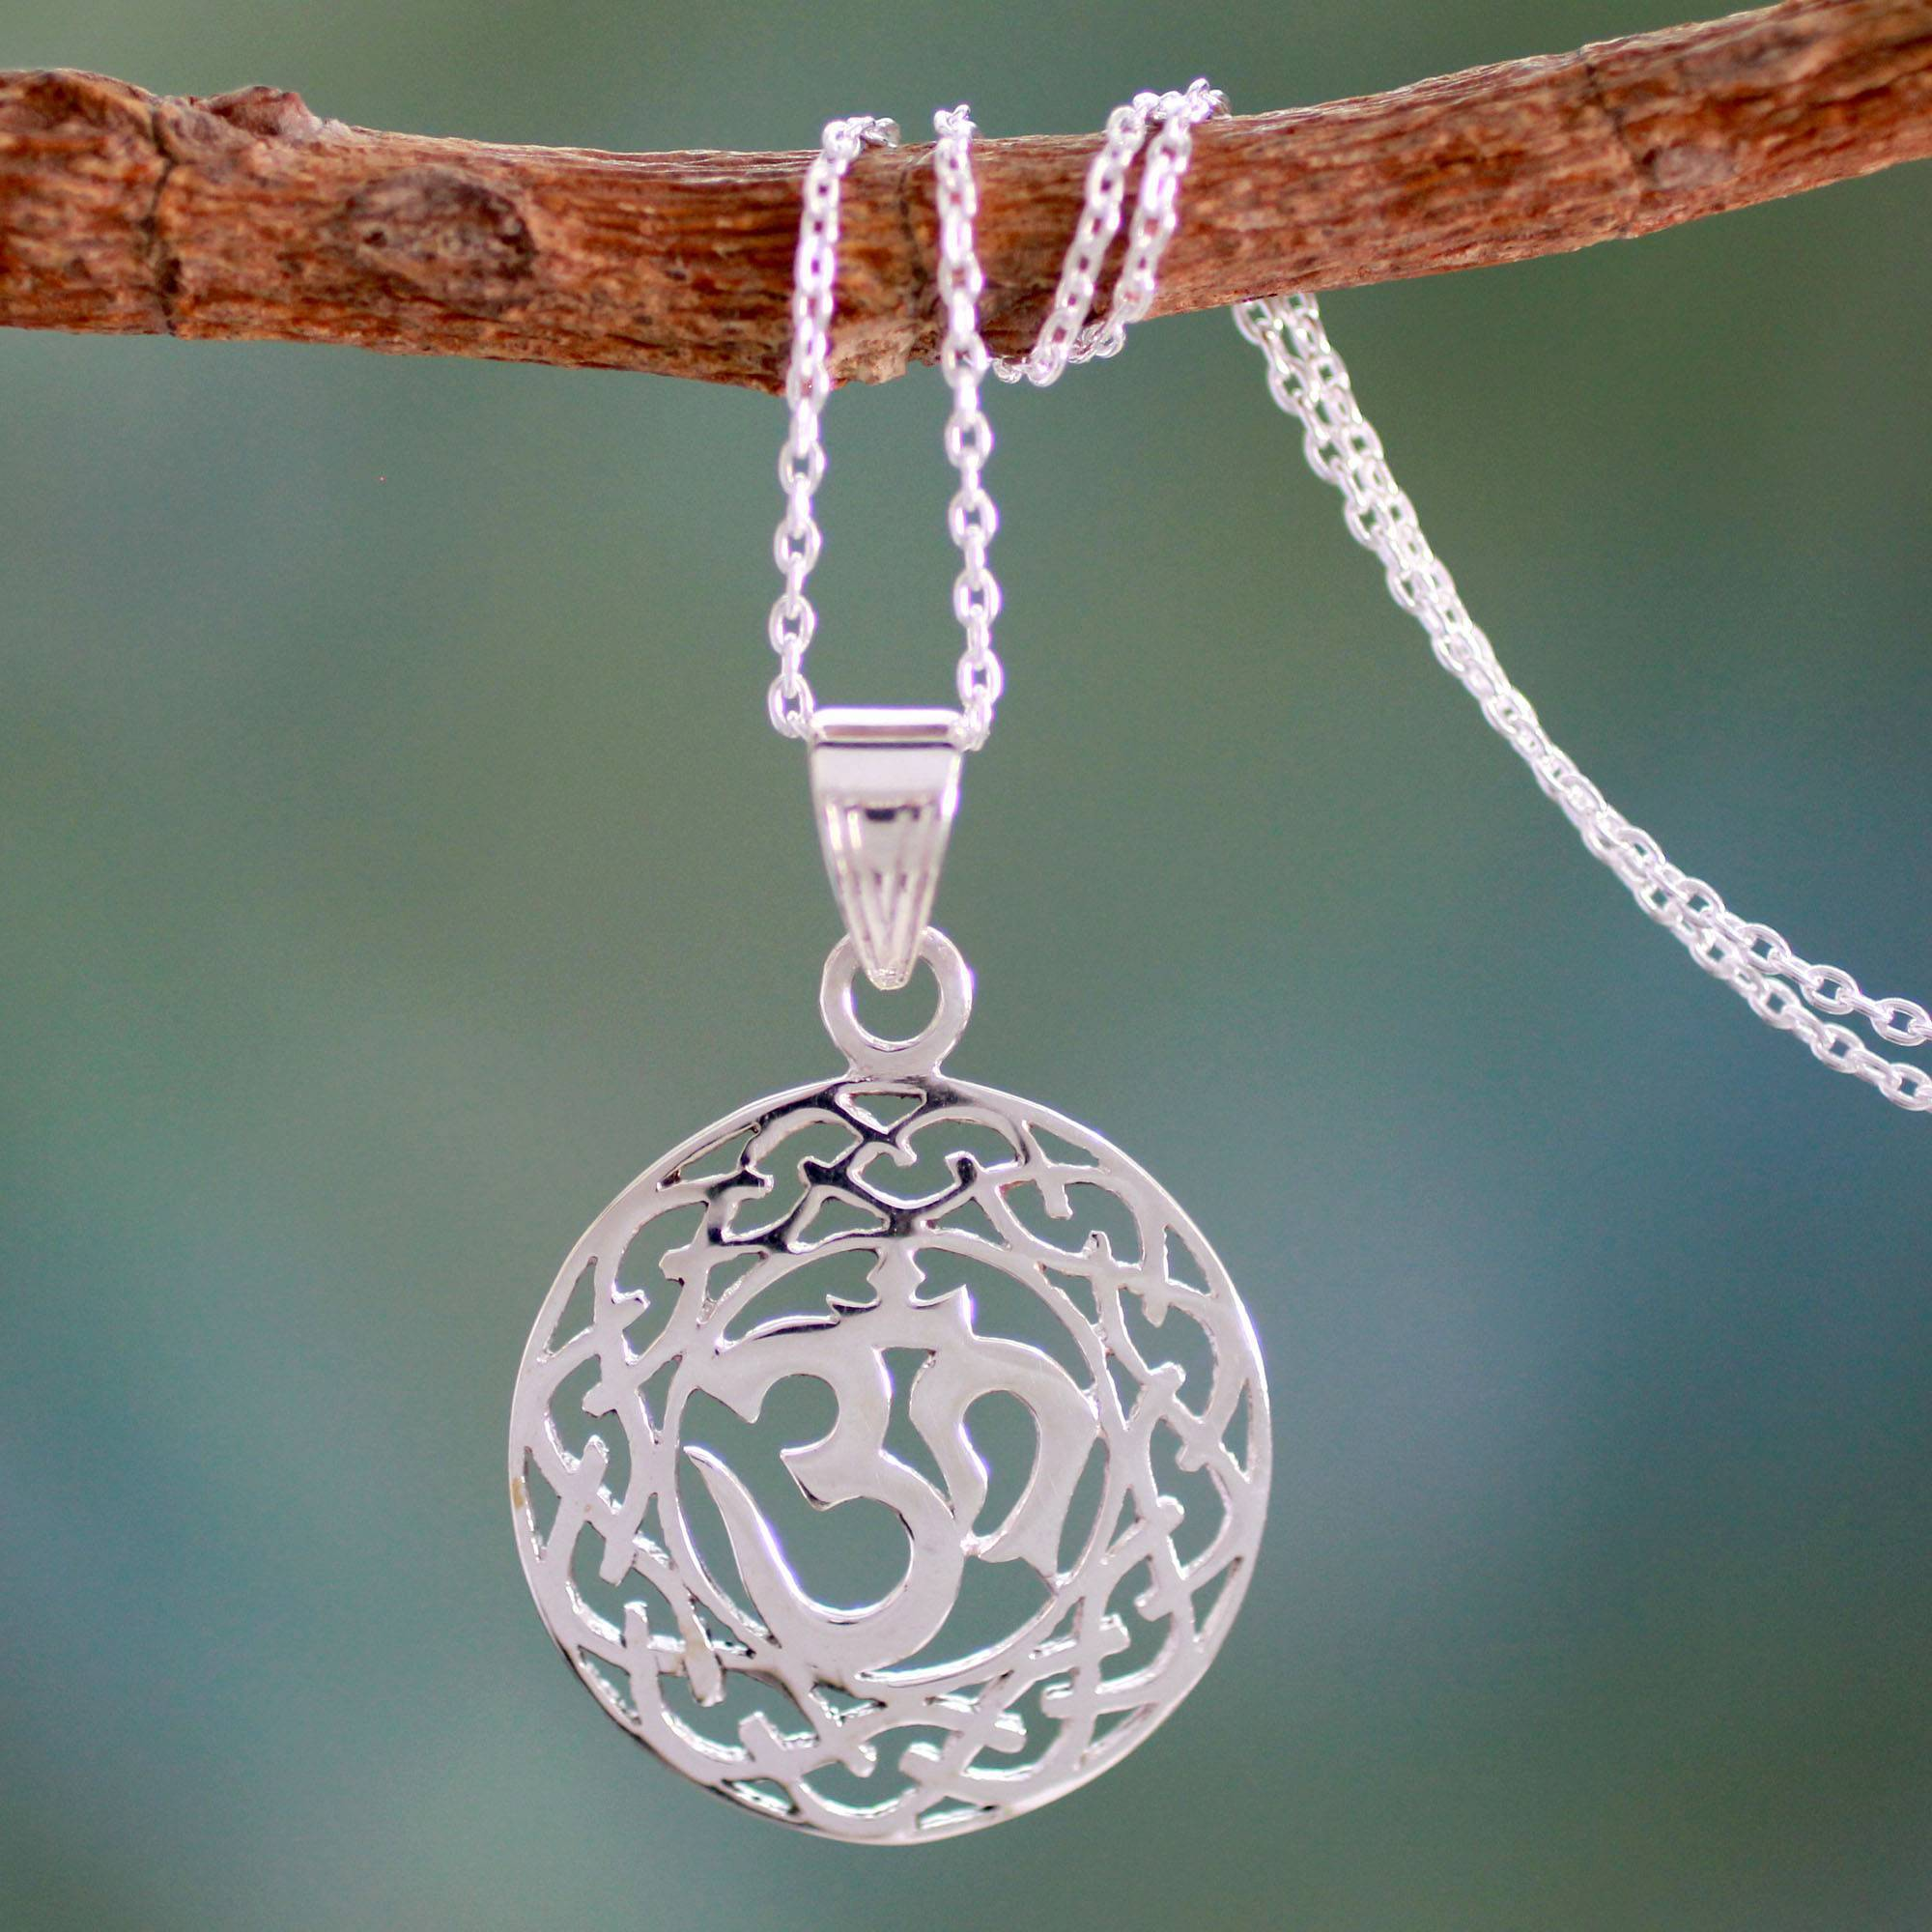 details this features life a the unique silver of to pendant deep have plain products sterling pn considered connection spiritual meaning flower exotic necklaces motif is necklace